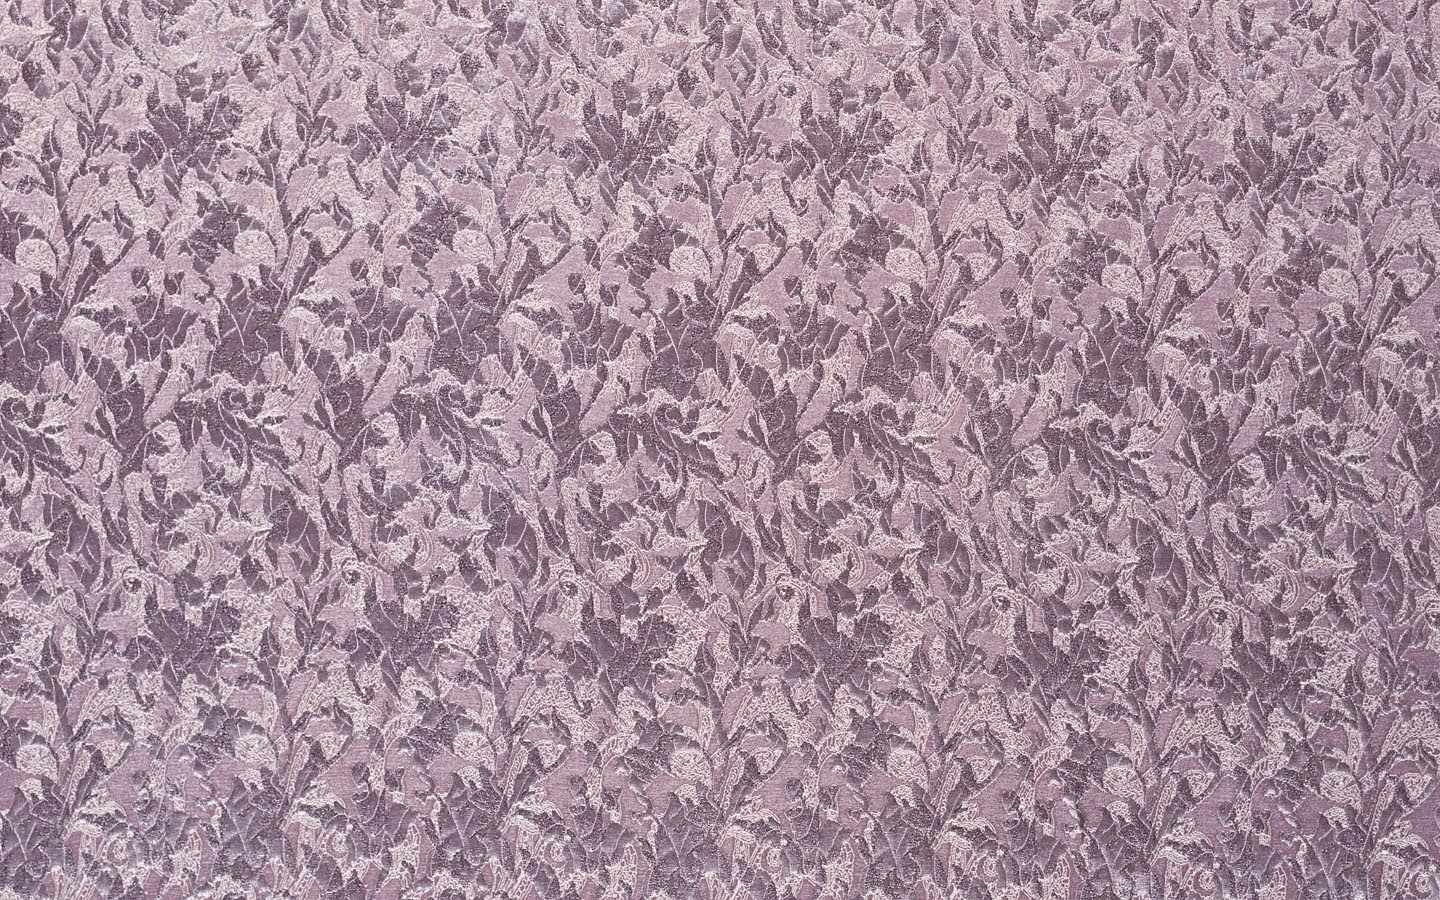 Fabric texture 13261